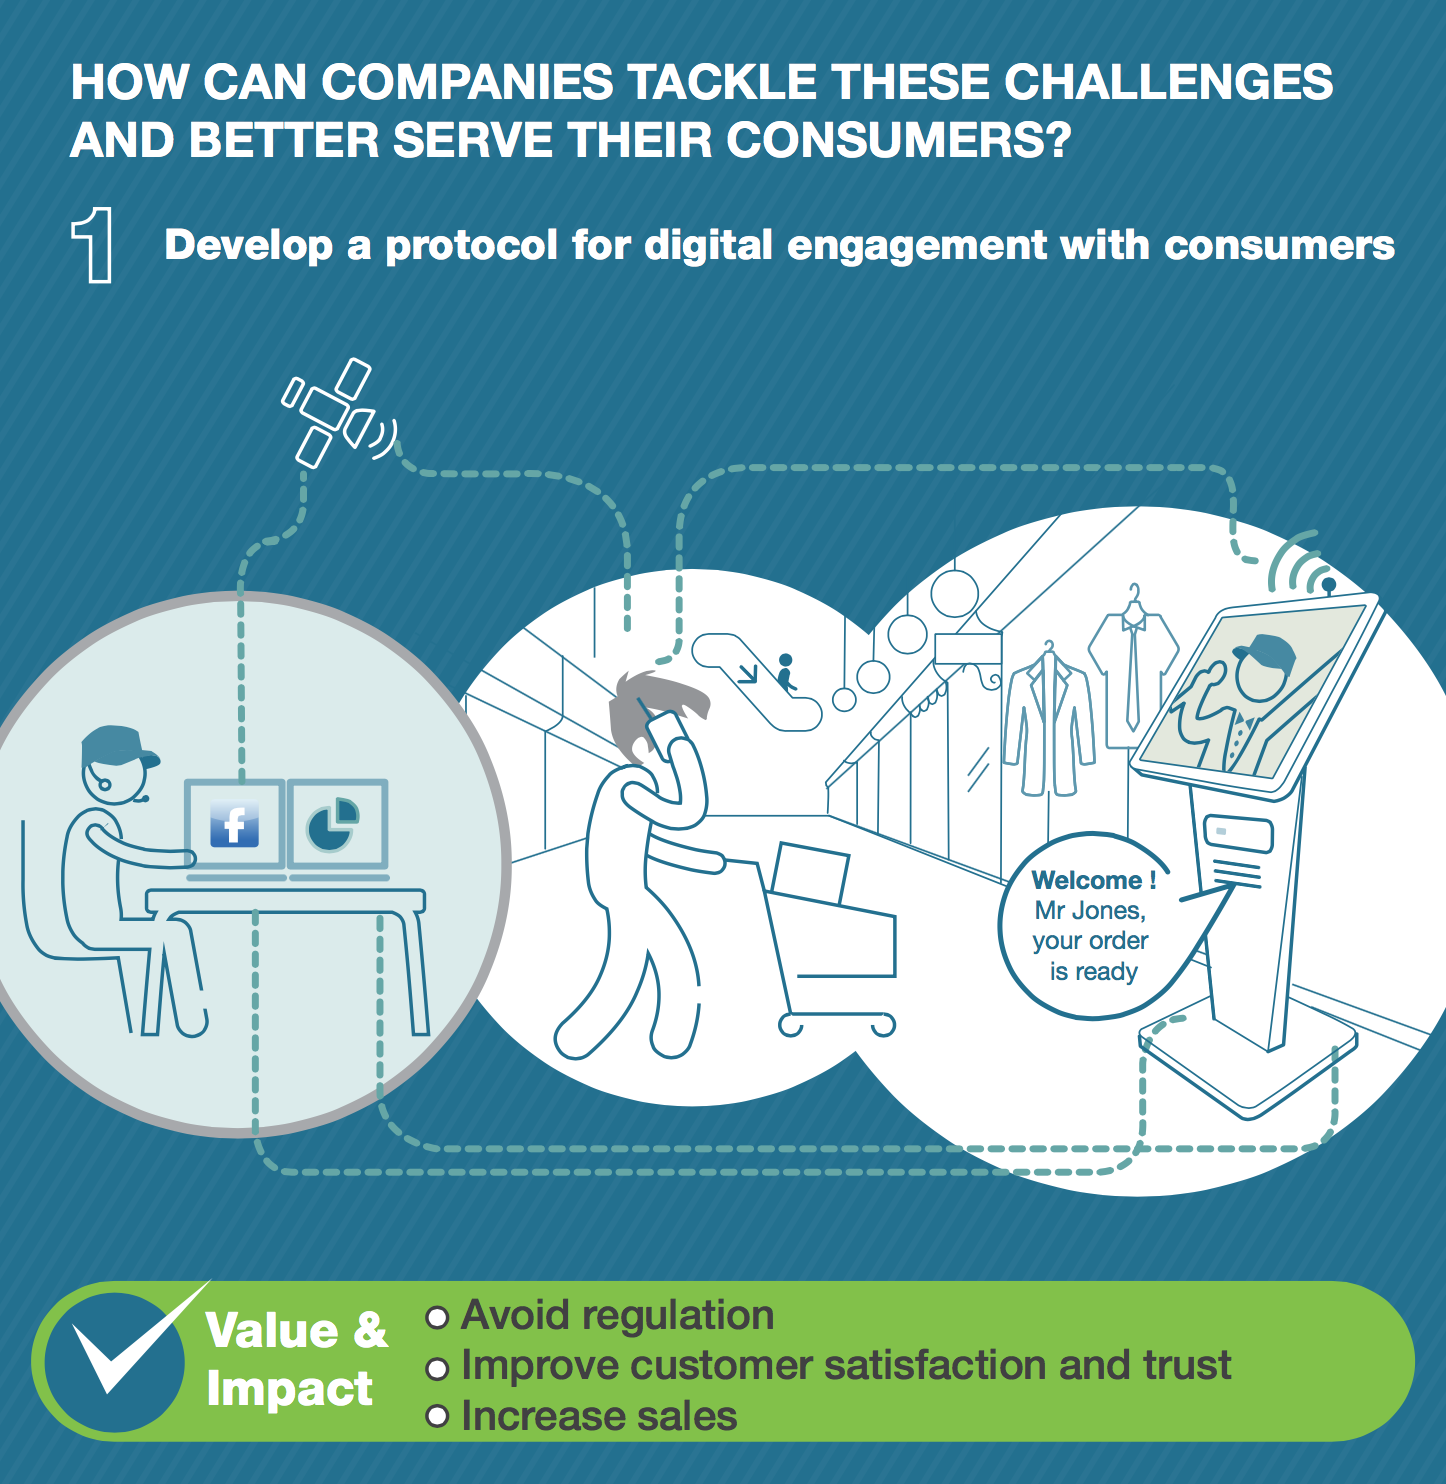 How can Companies tackle challenges retail LAM 1.png